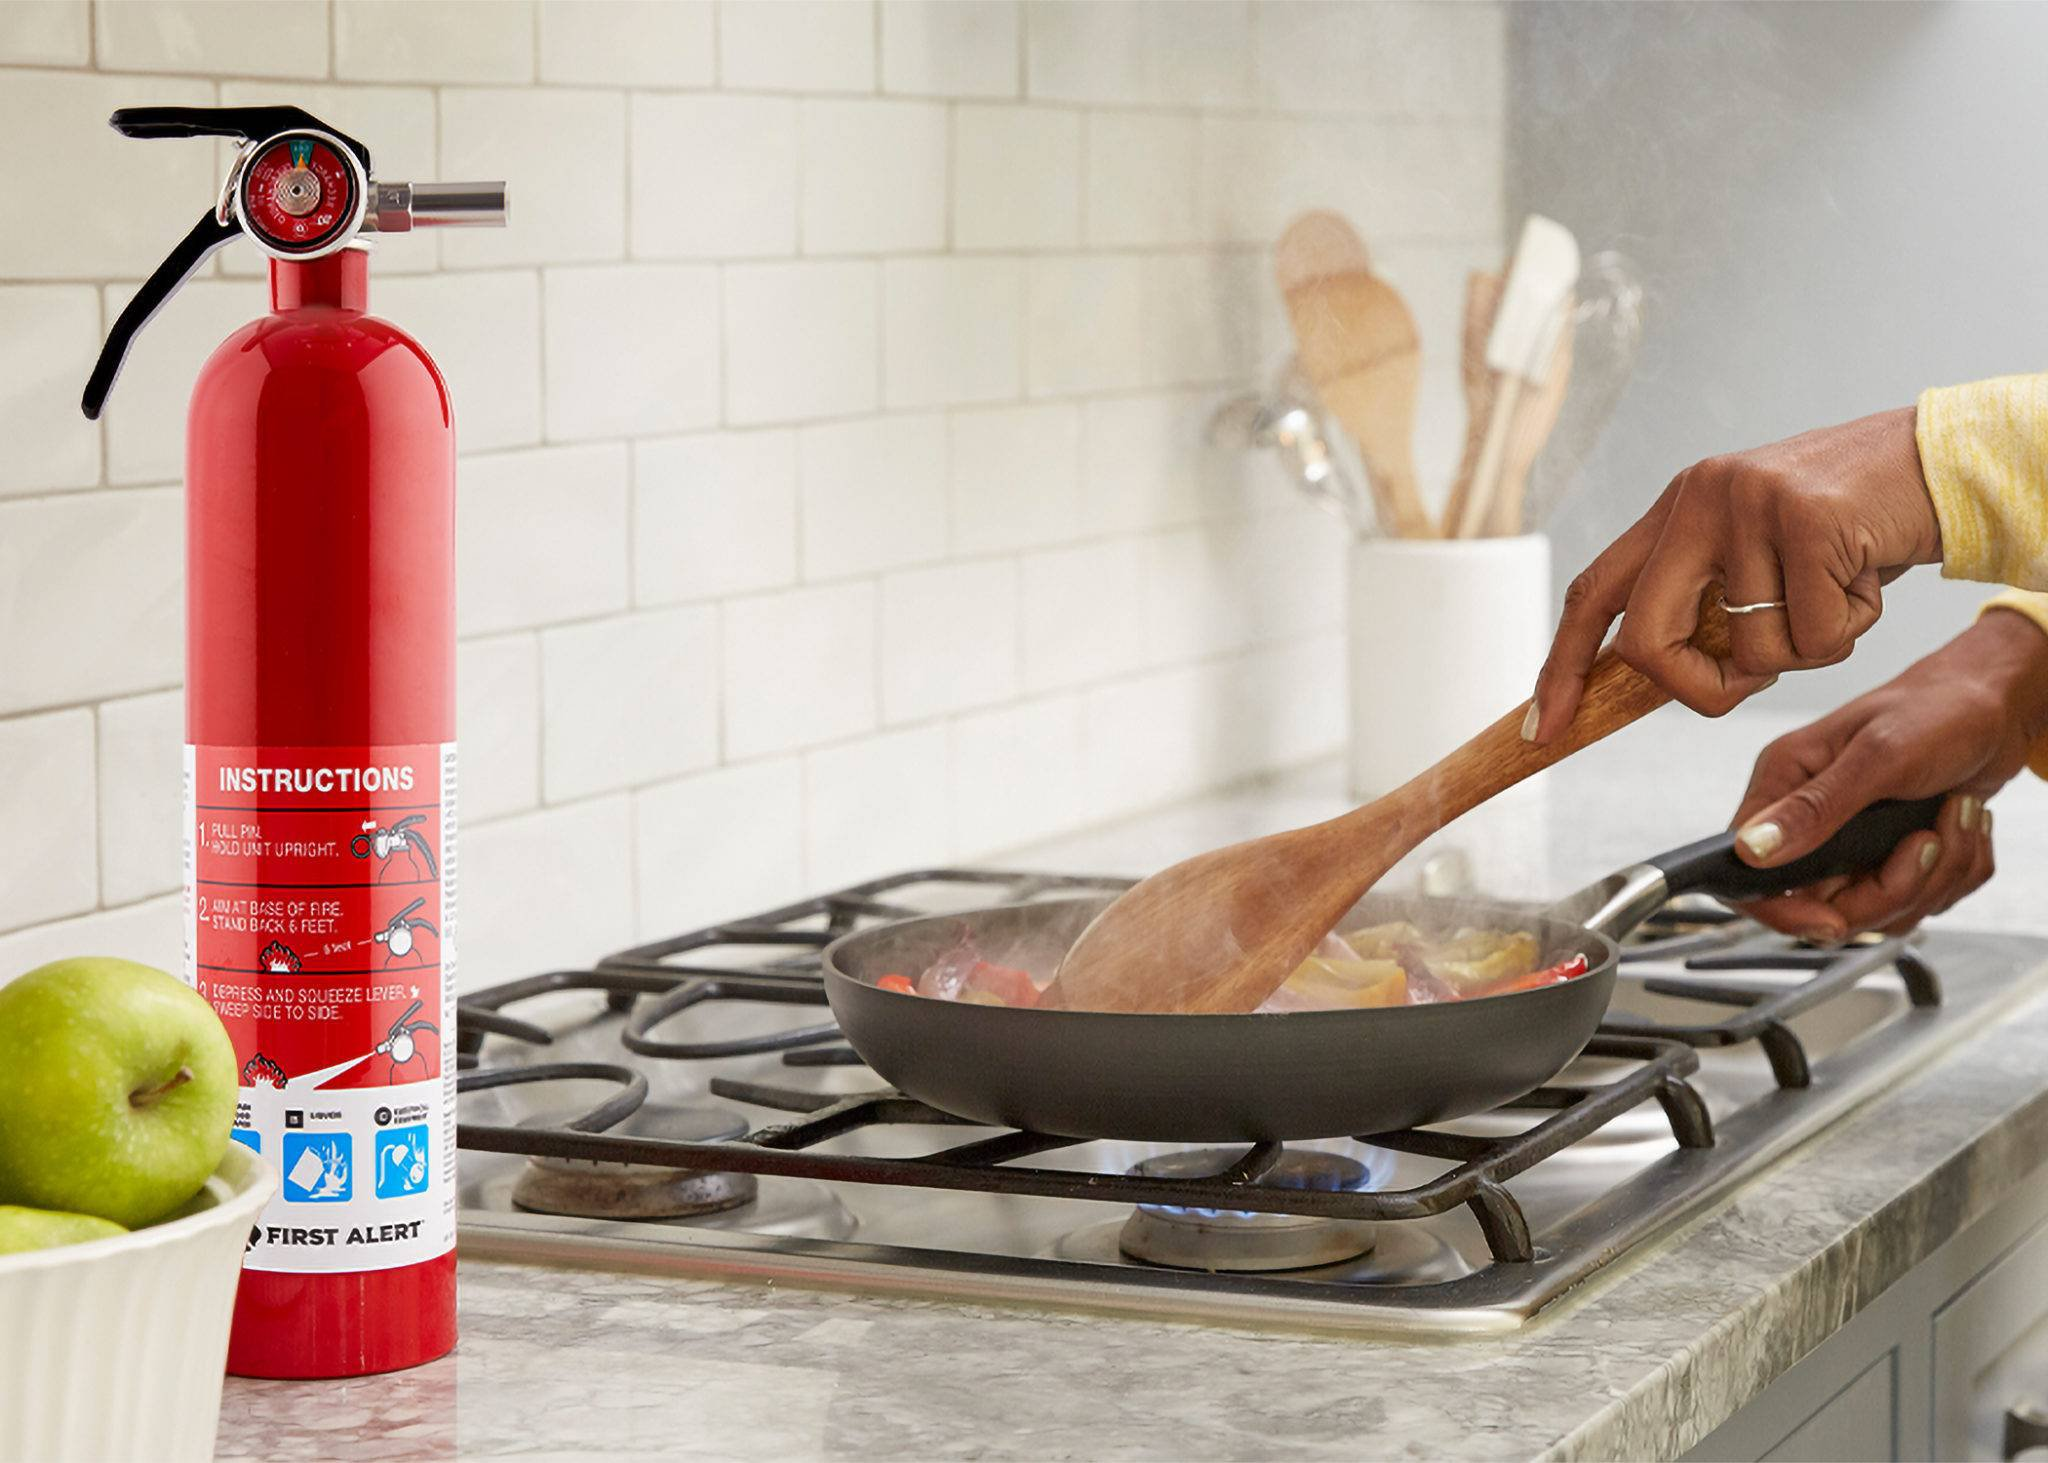 Kitchen Fire Safety Do's and Don'ts